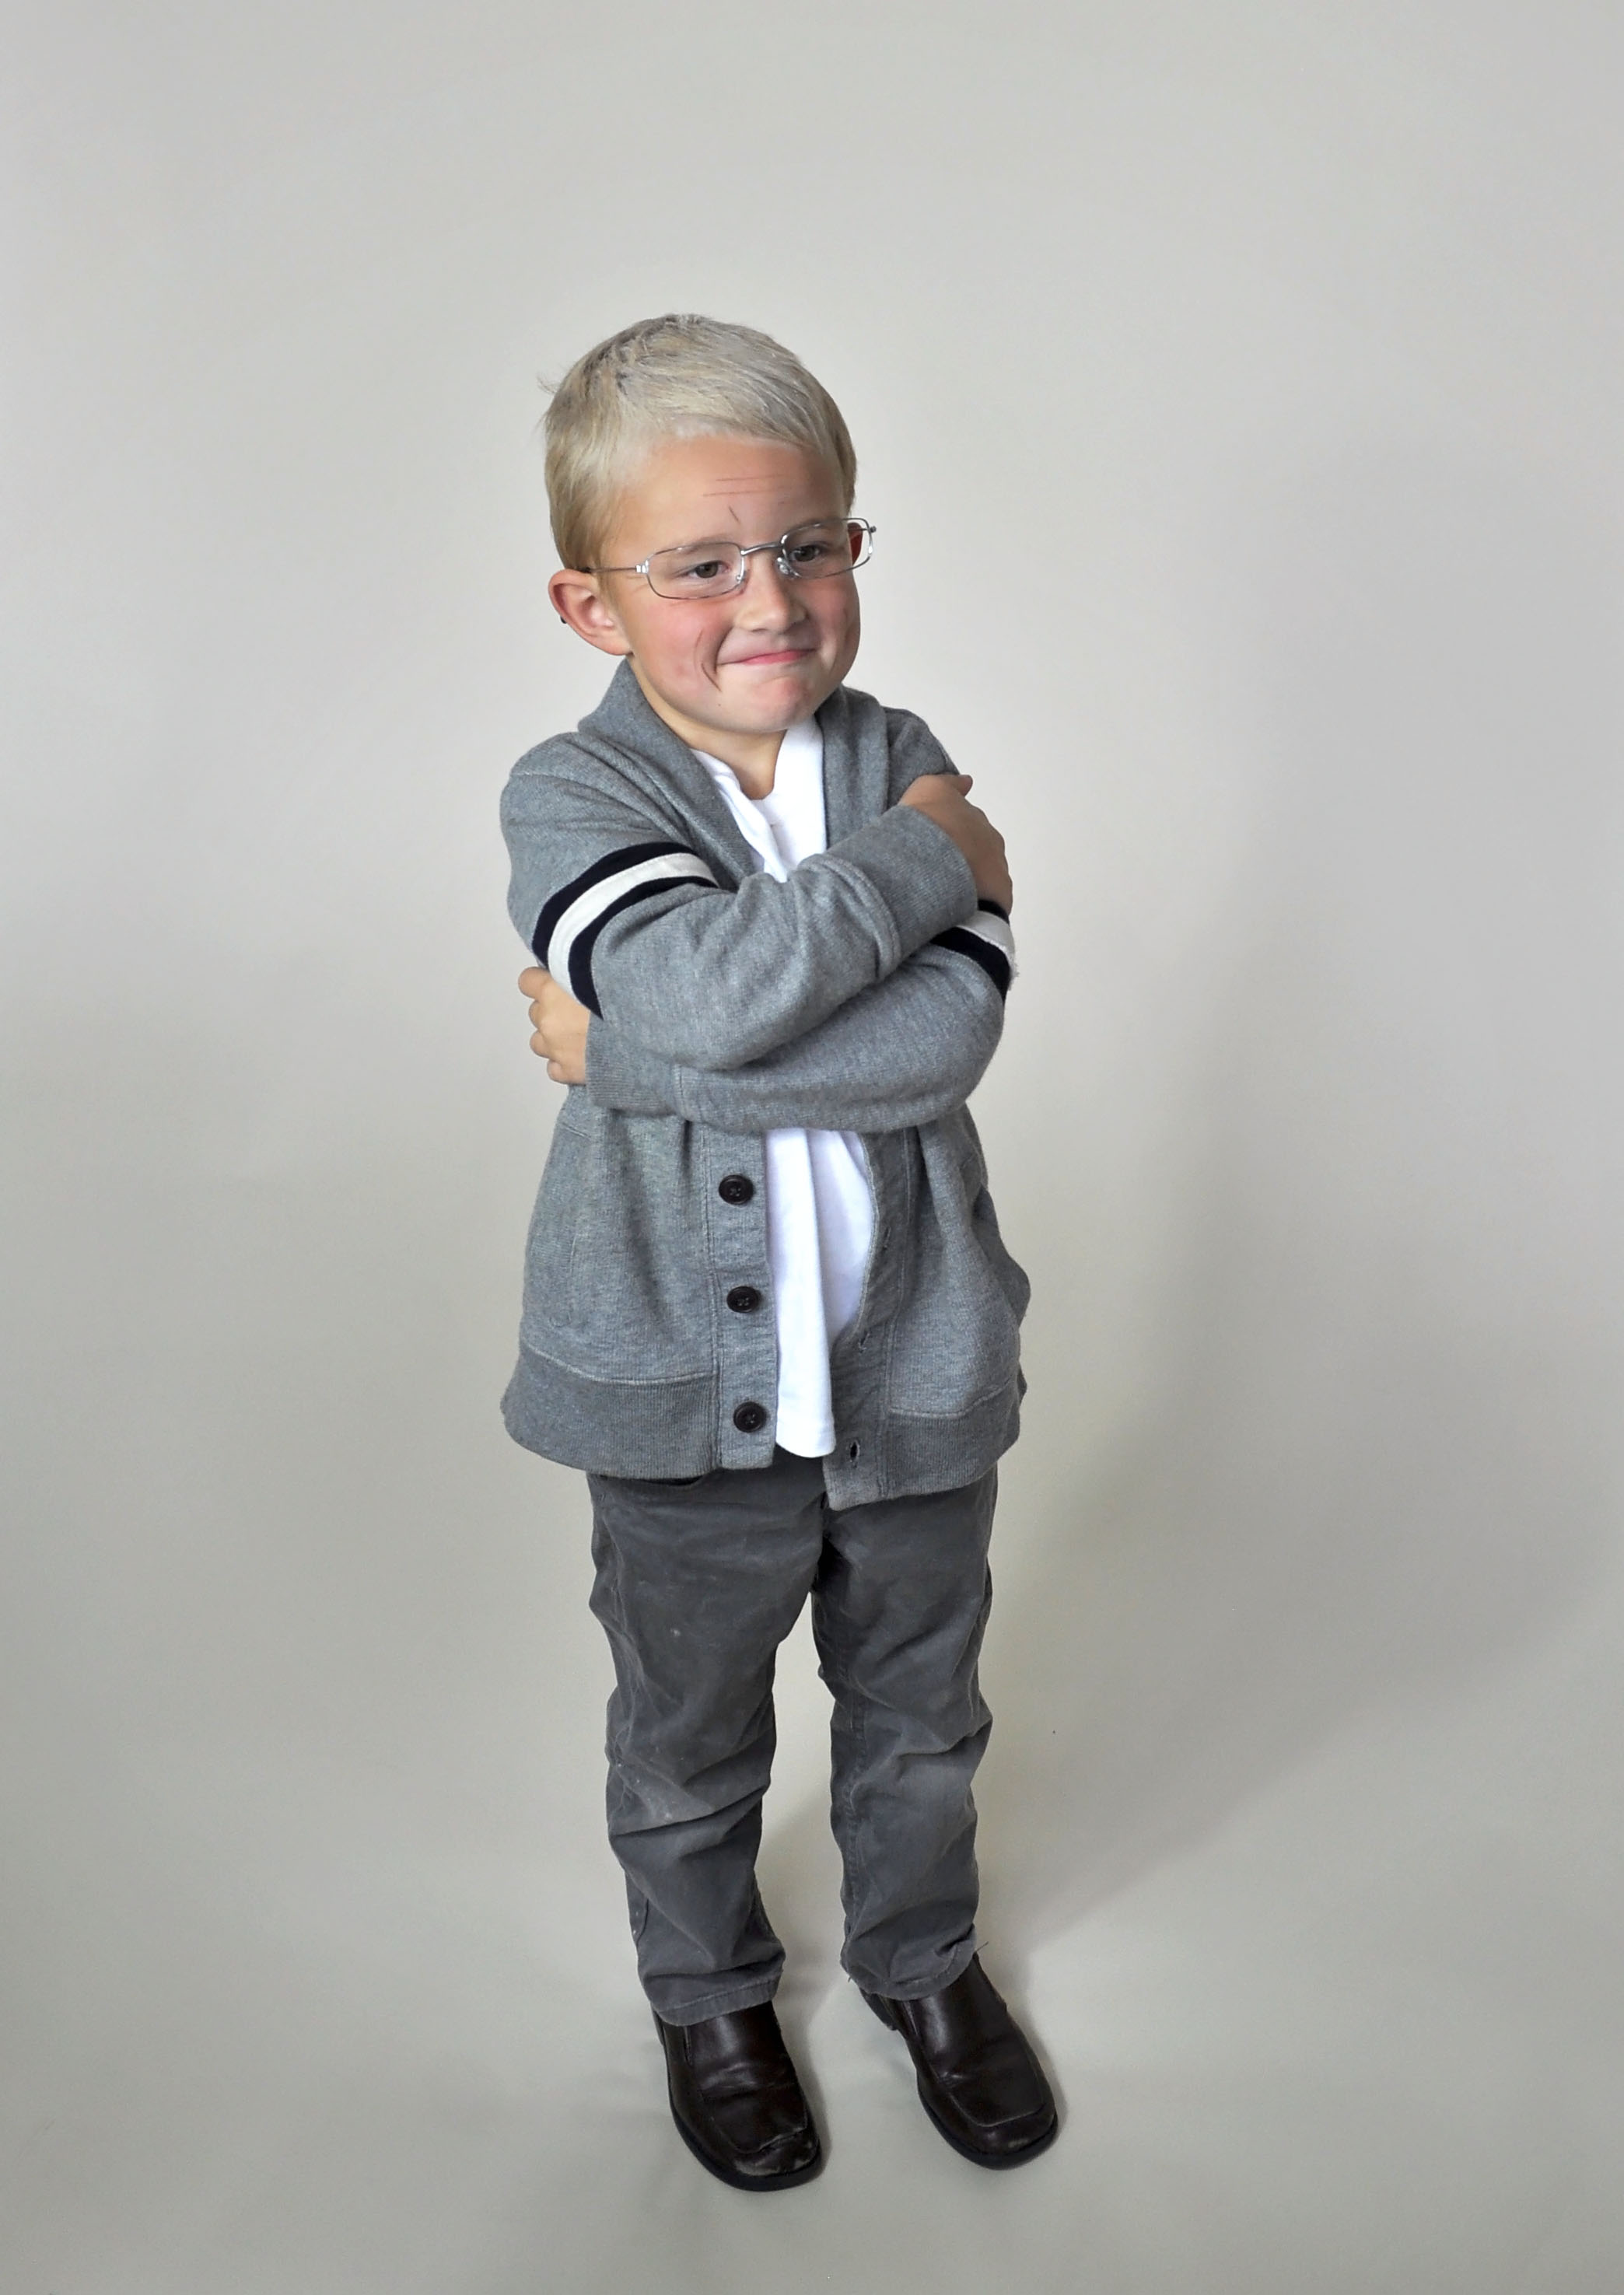 Ridiculously easy last minute halloween costumes. Old man--use flour to whiten hair, draw on wrinkles with an eyebrow pencil, and pop the lenses out of some dollar store reading glasses.